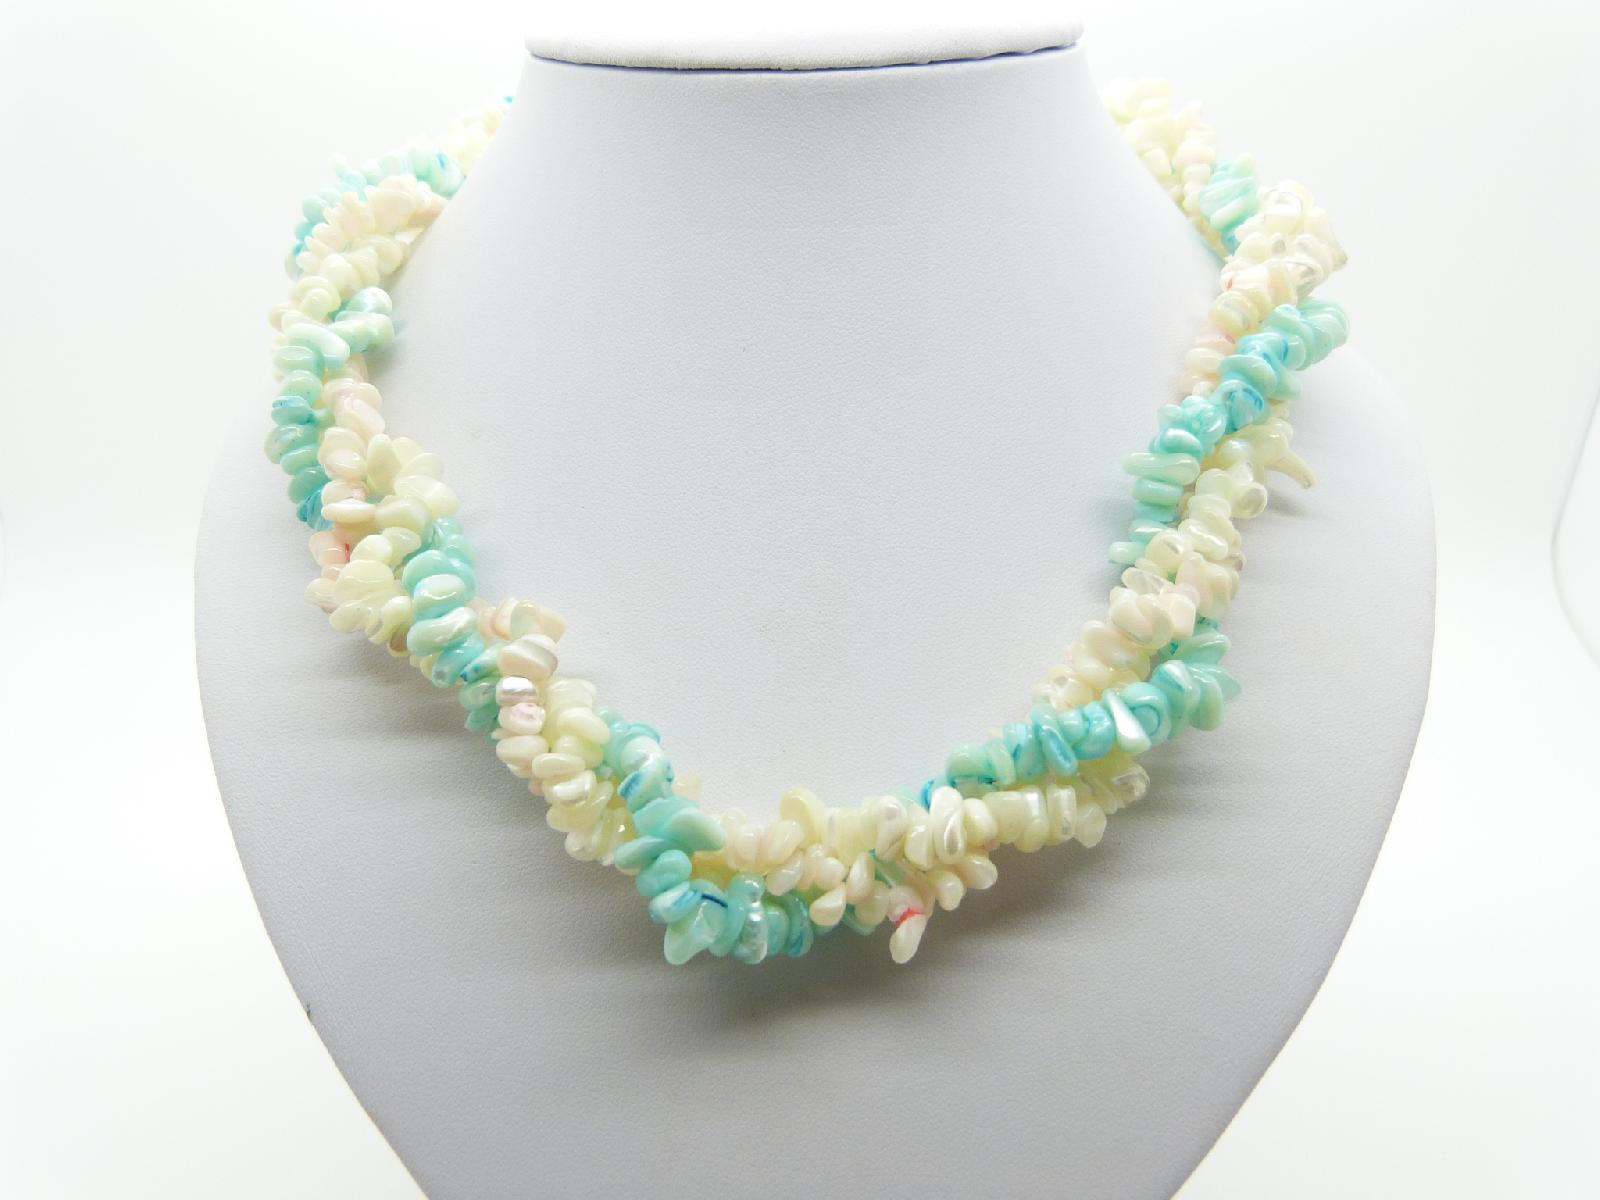 £32.00 - Vintage 50s Fab Three Row Twist Aqua and White Mother of Pearl Bead 55cms Necklace